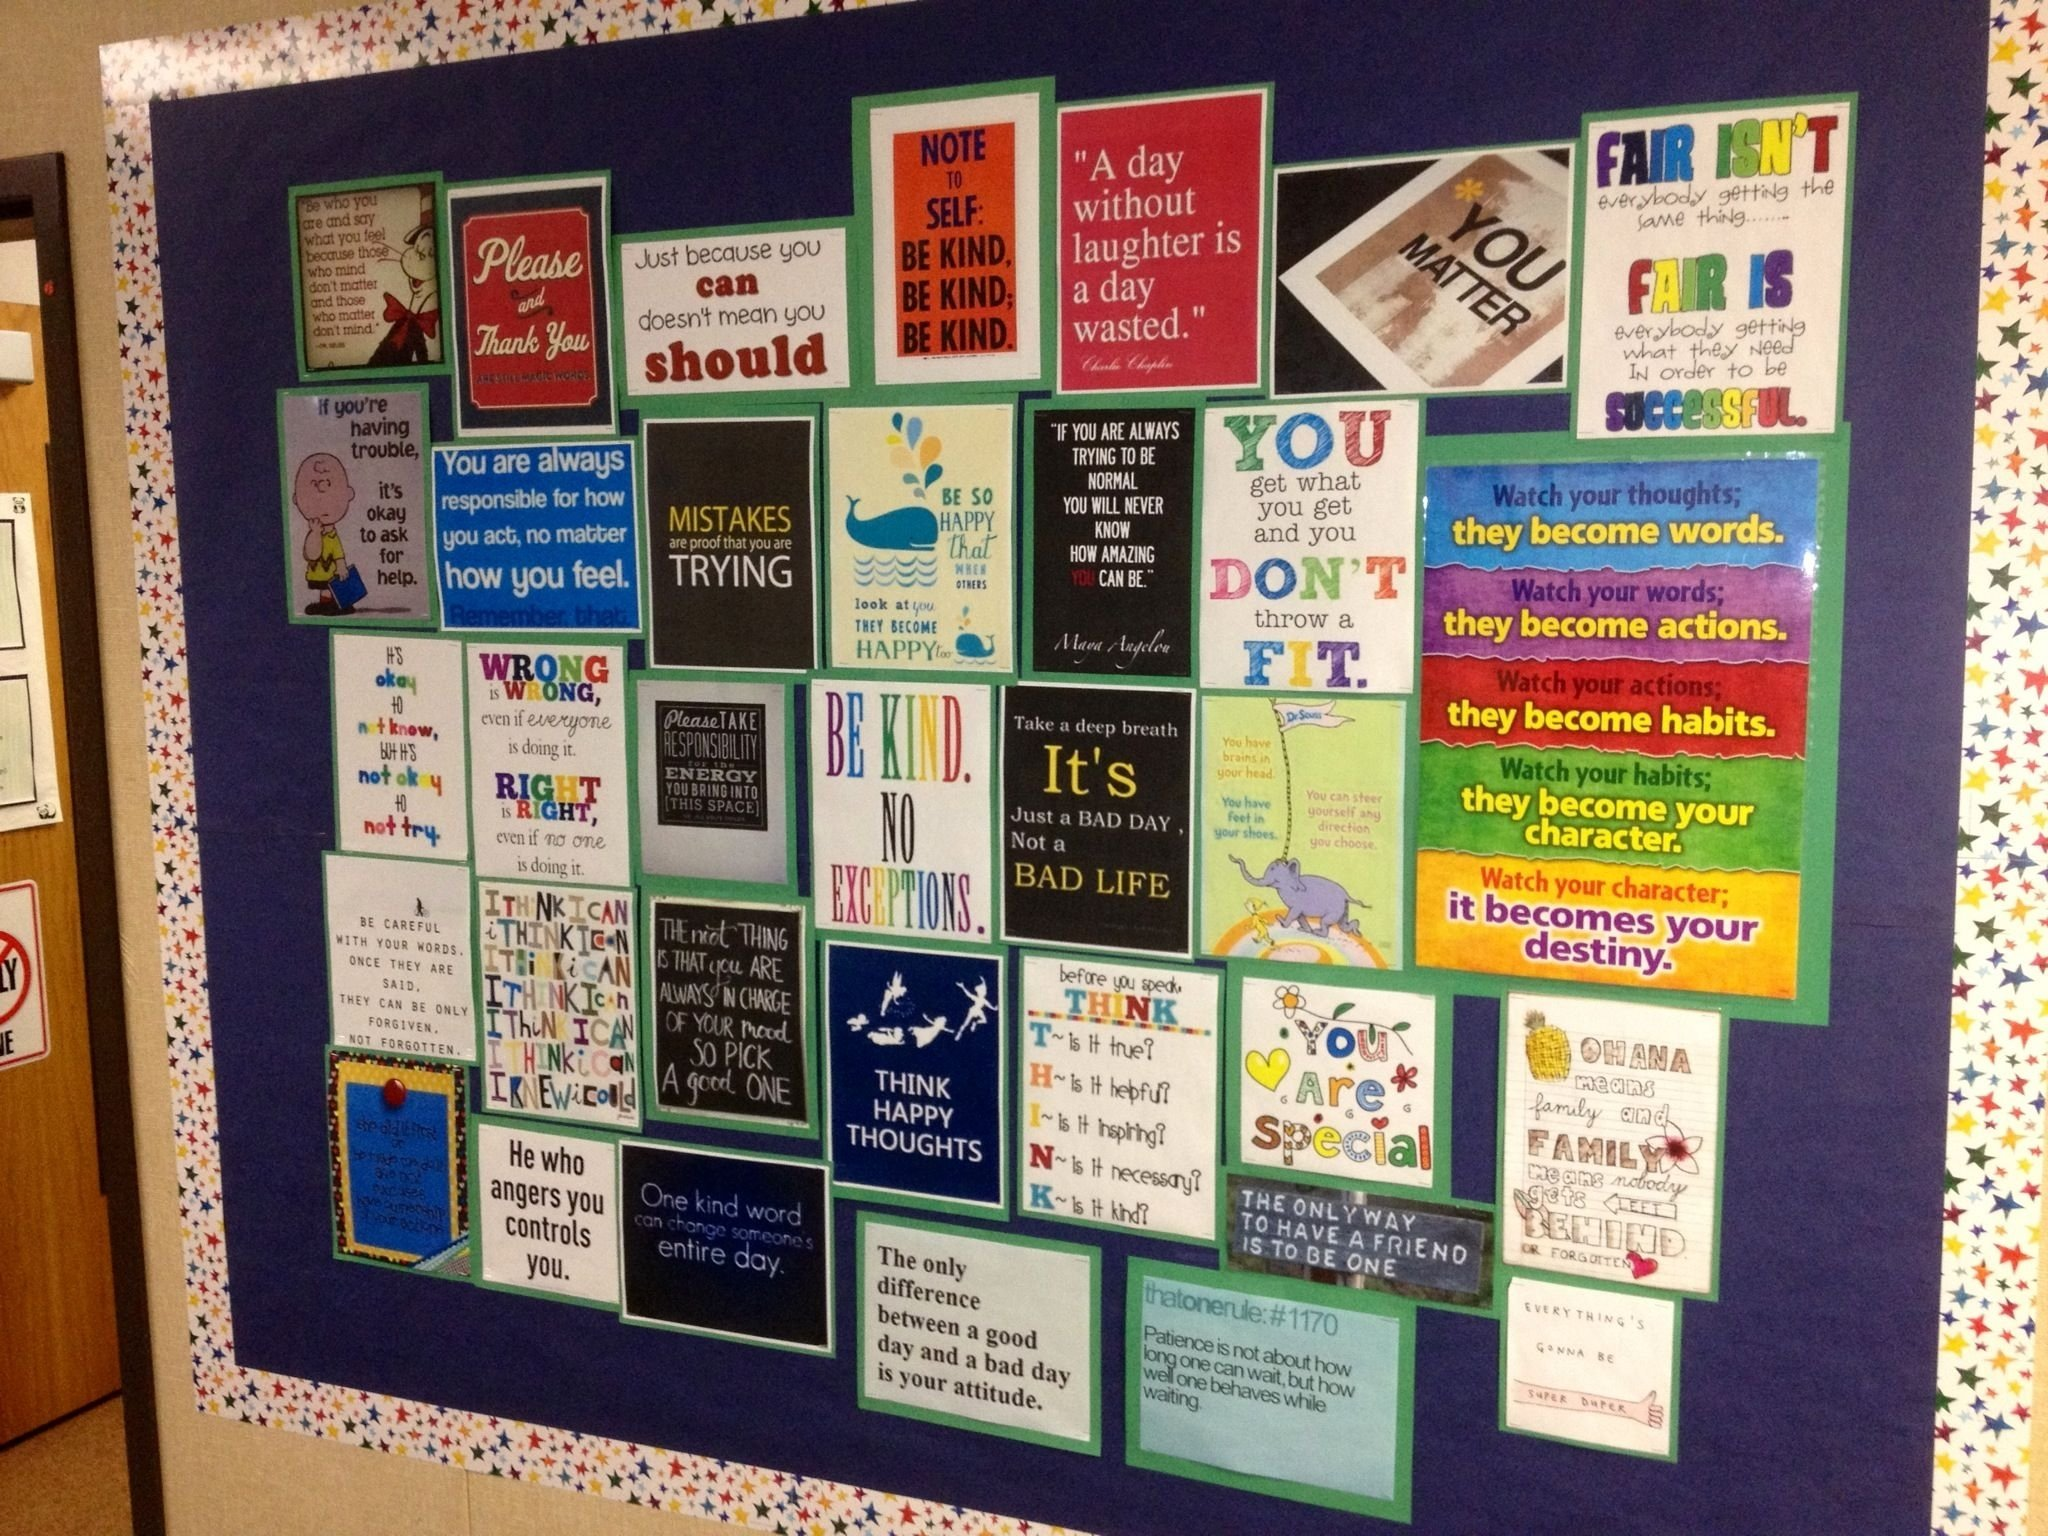 10 Perfect Bulletin Board Ideas For Workplace pinerin pizzo on classroom posters bulletin boards pinterest 2020